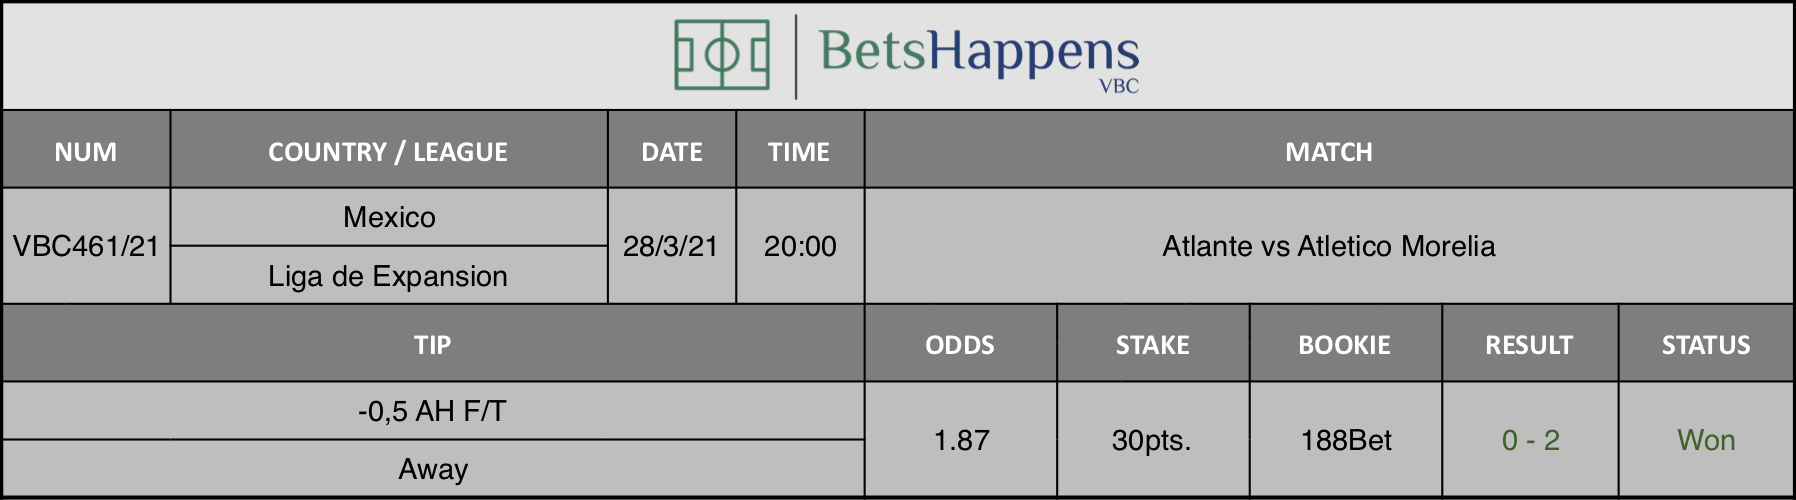 Results of our tip for the Atlante vs Atletico Morelia match where -0,5 AH F/T Away is recommended.